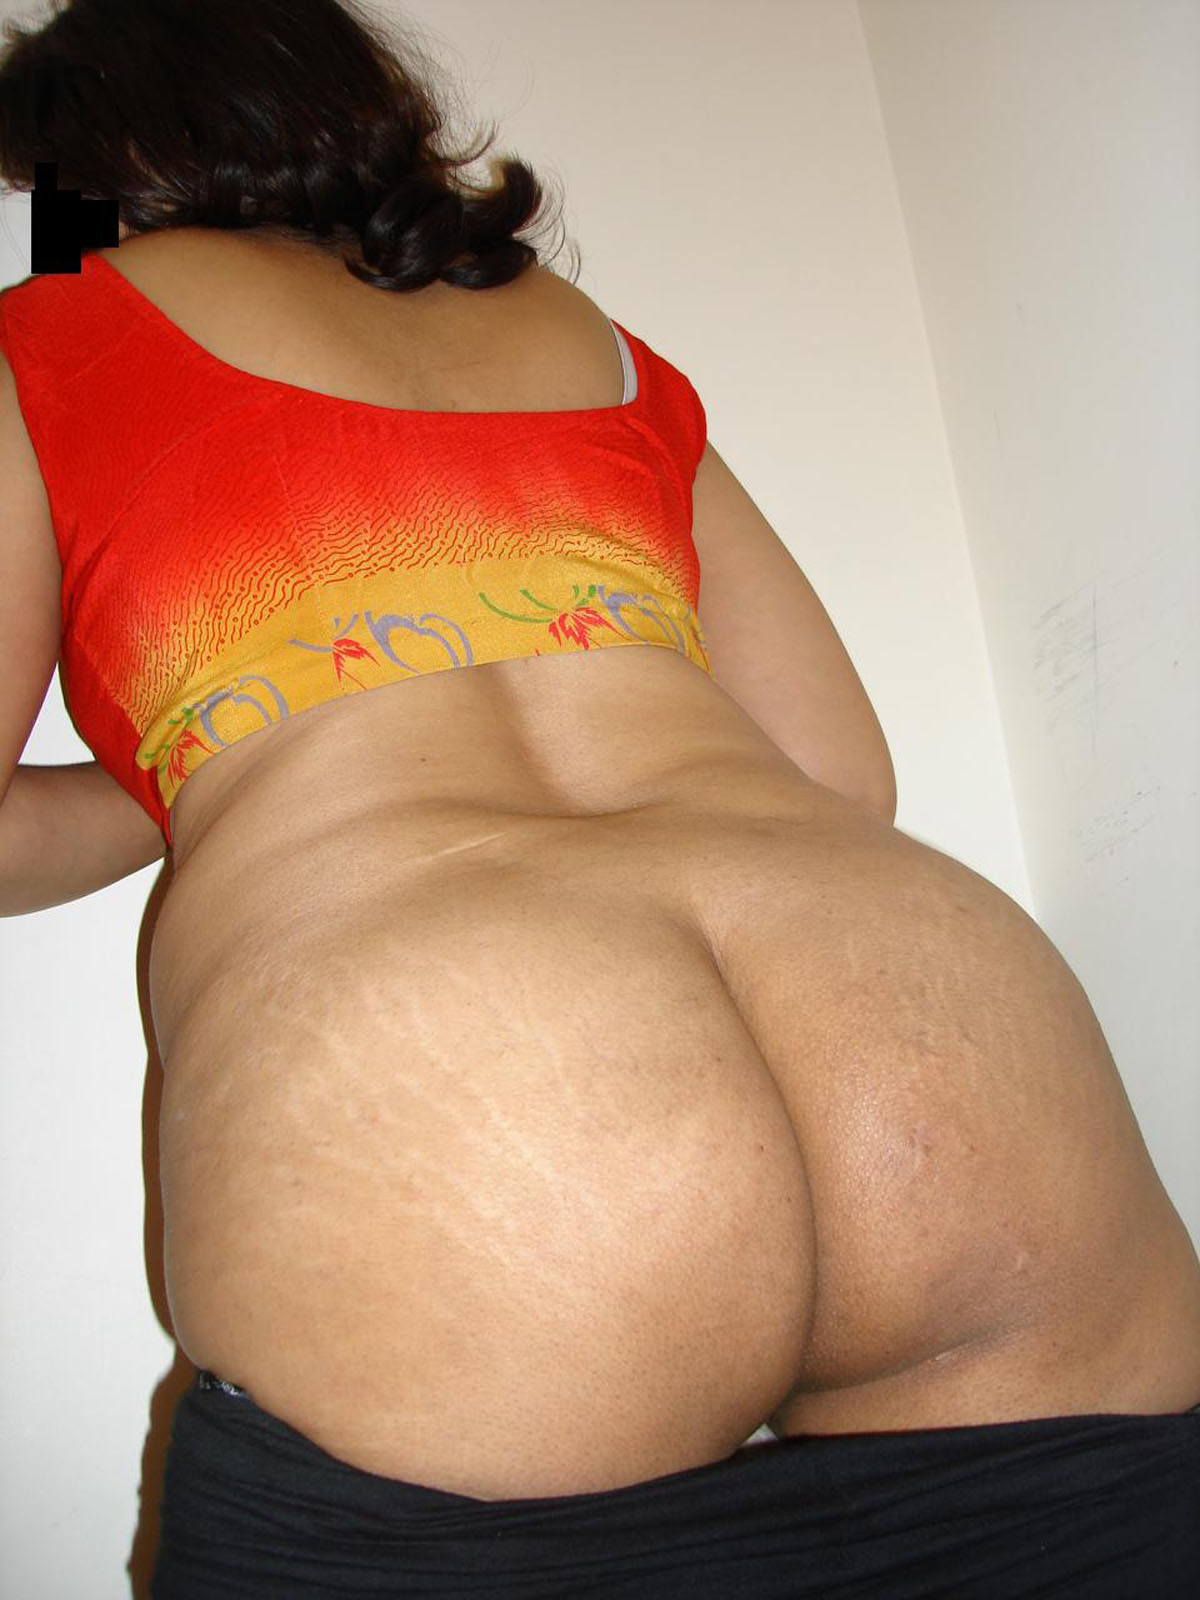 Indian Big Ass Hot Mallu Aunty Photo  Big Boobs Sexy-8560